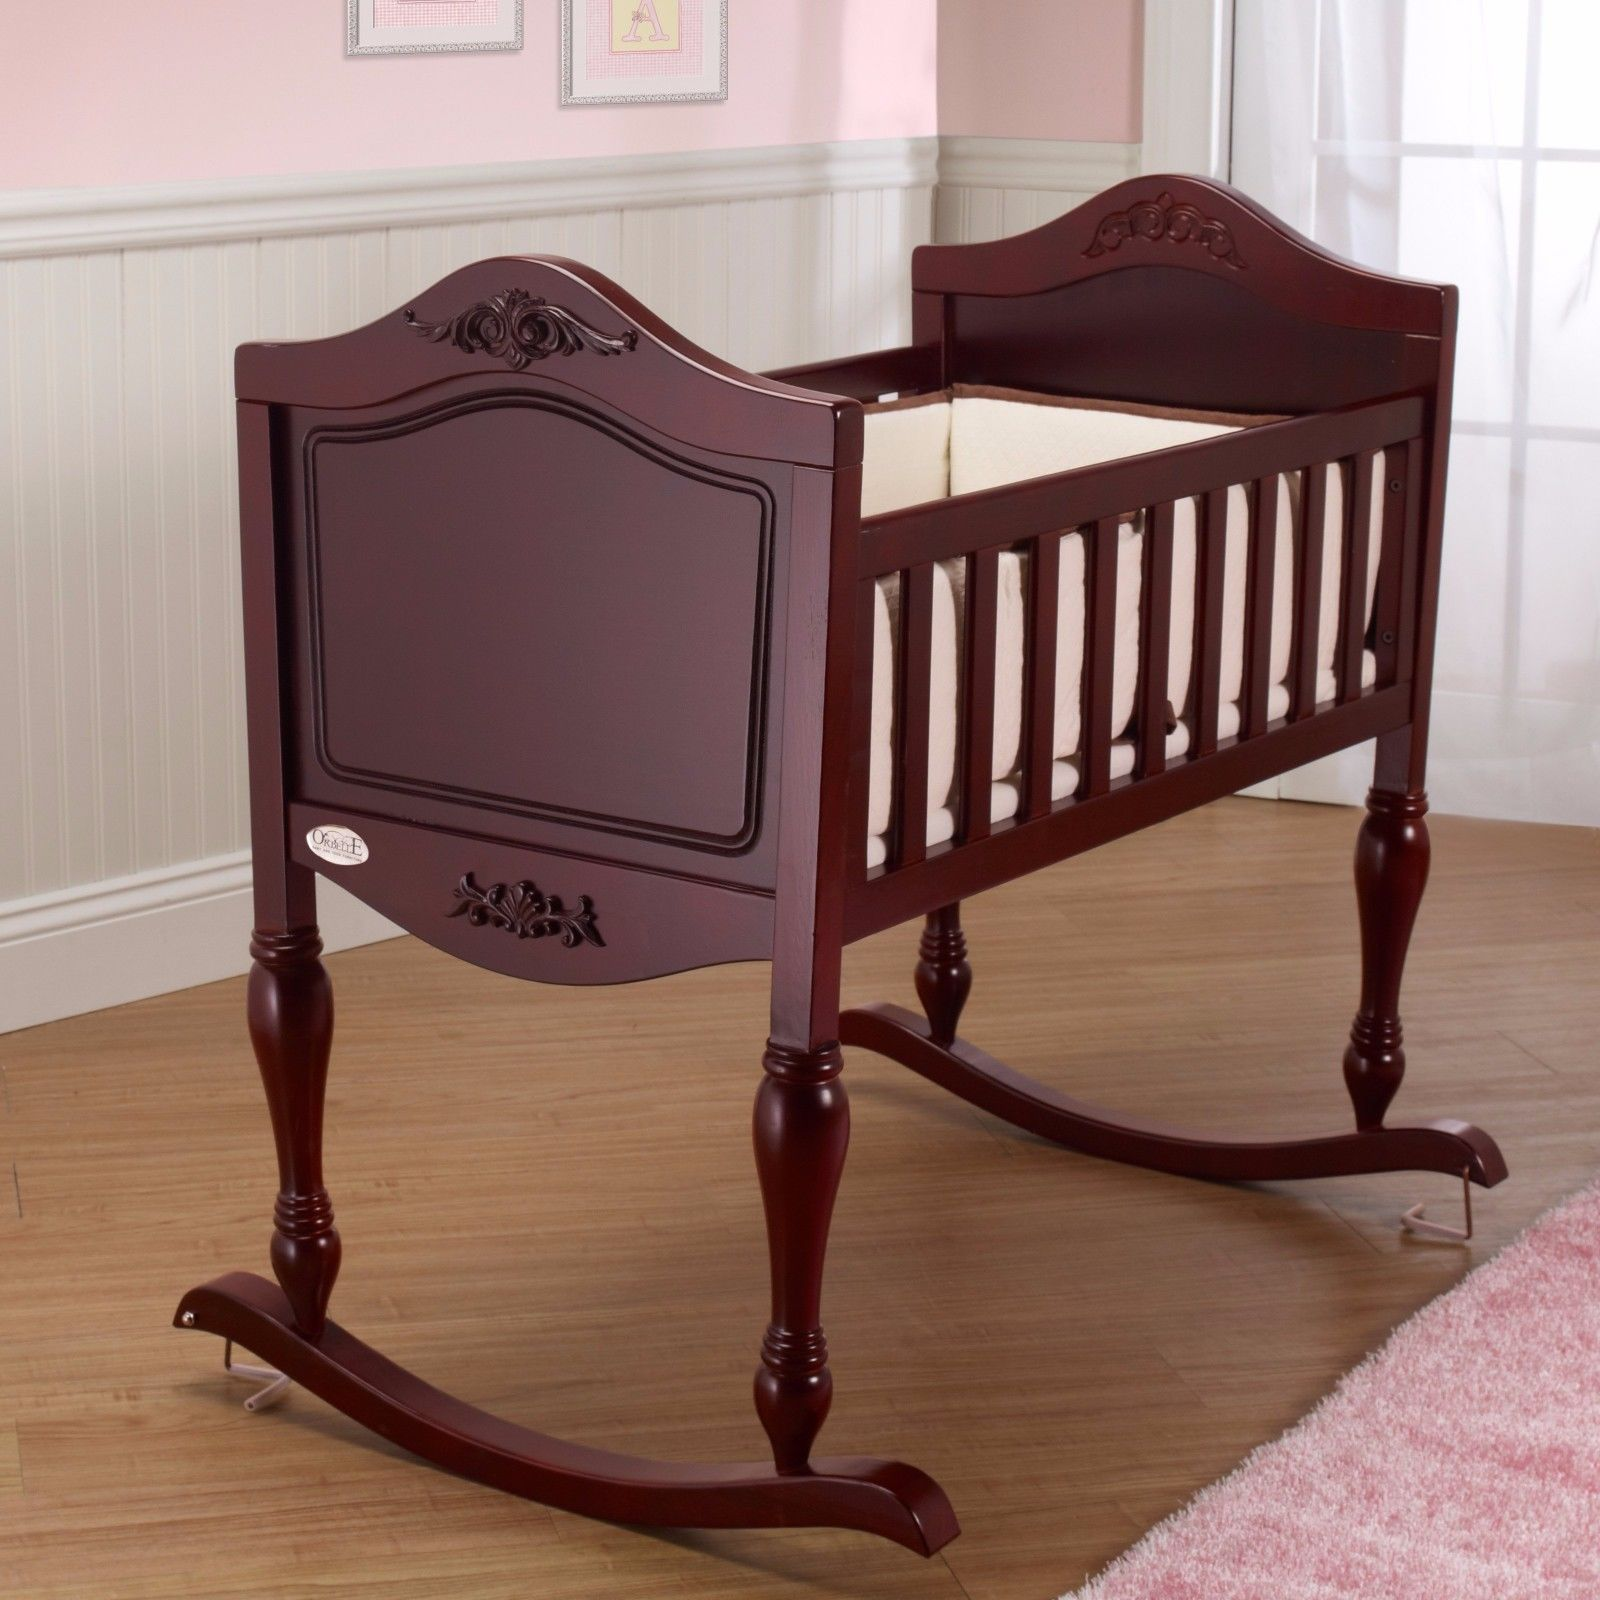 Handmade Rocking Chair additionally Rustic Baby Shower moreover Antique Baby Crib also 380037537 as well Pack And Play Changing Table. on antique wooden bassinet